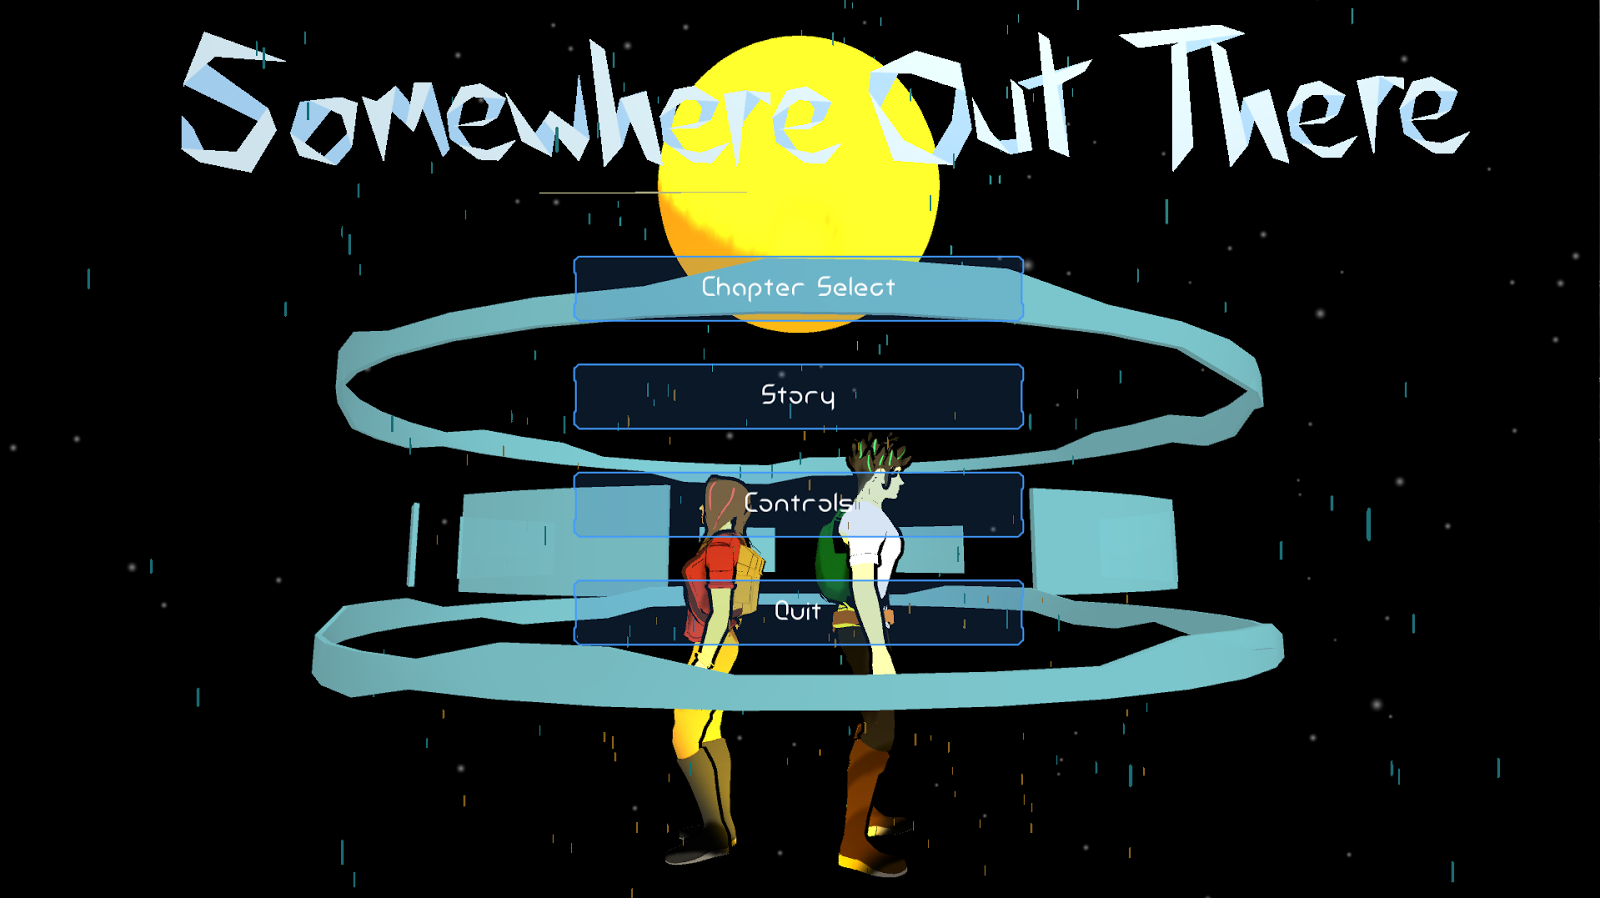 Models for both characters viewed on the menu screen.